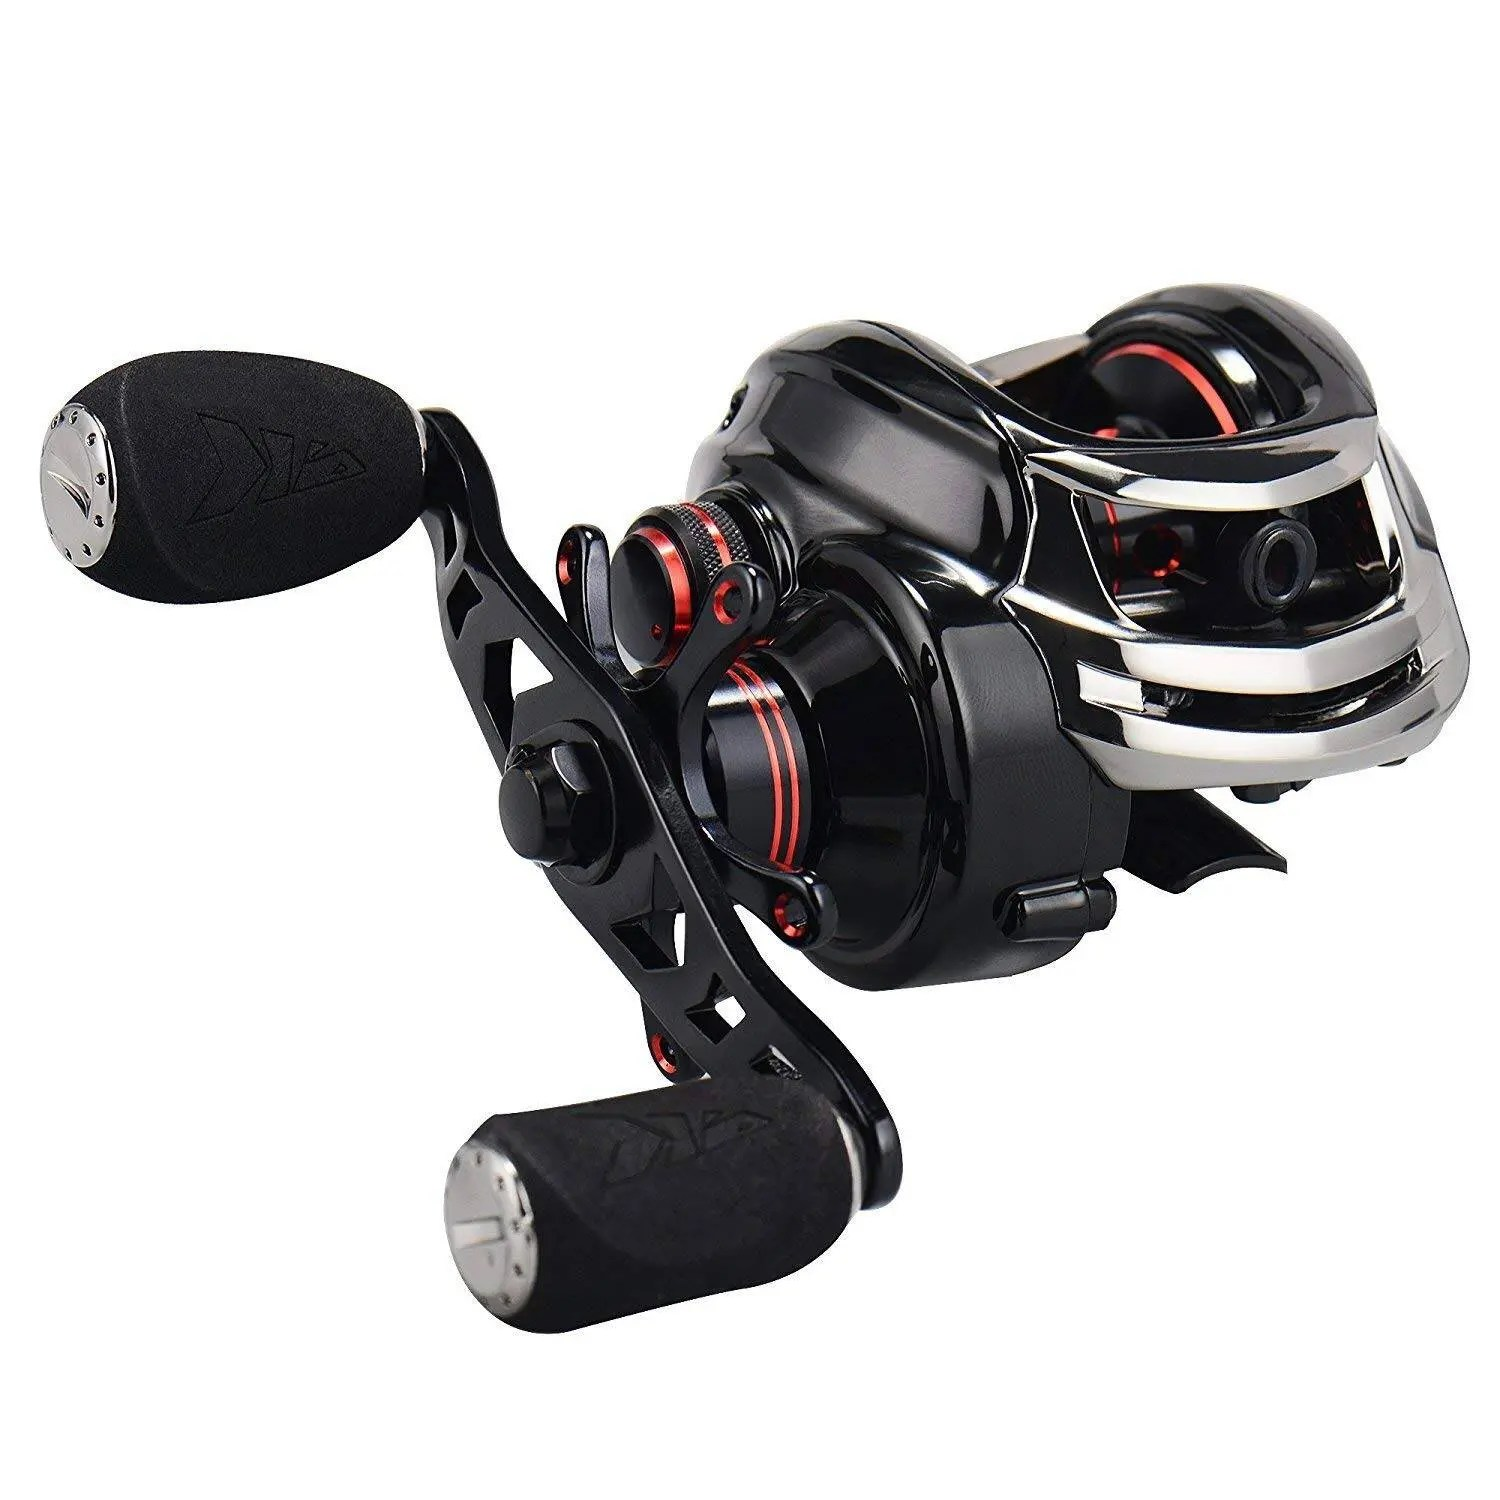 KastKing Royale Legend Whitemax Low Profile Baitcasting Fishing Reel